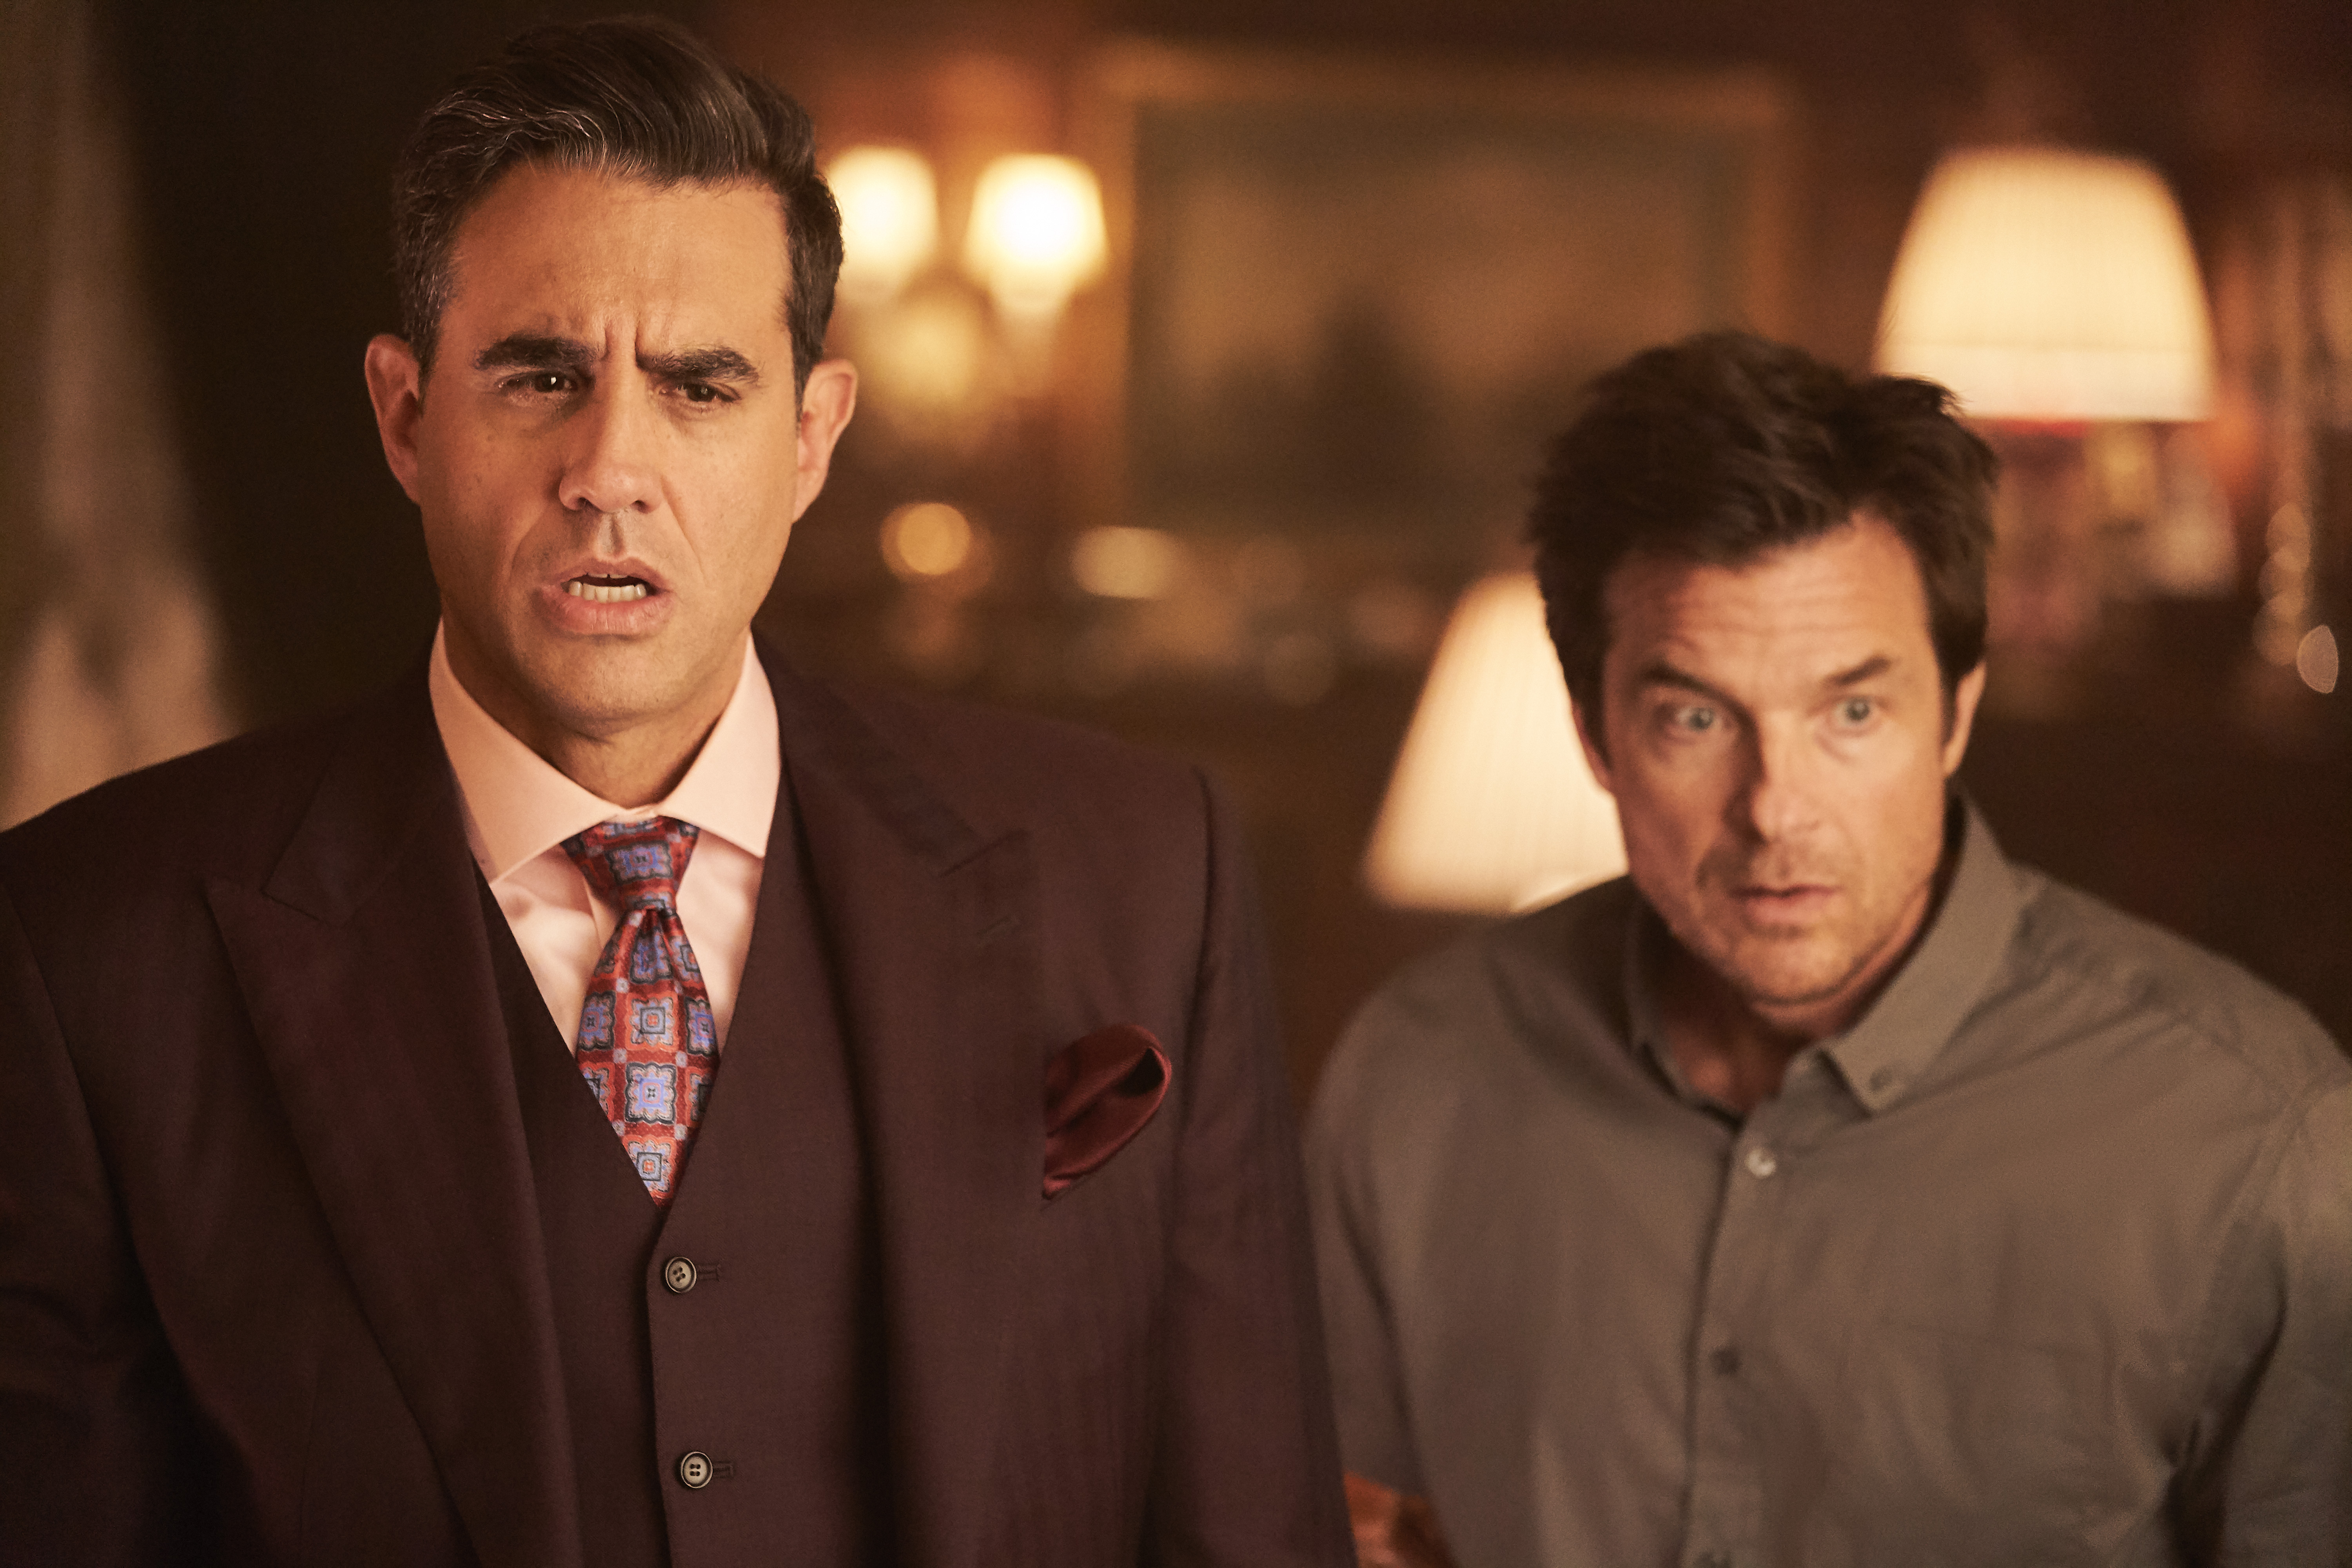 Bobby Cannavale and Jason Bateman as the baddies